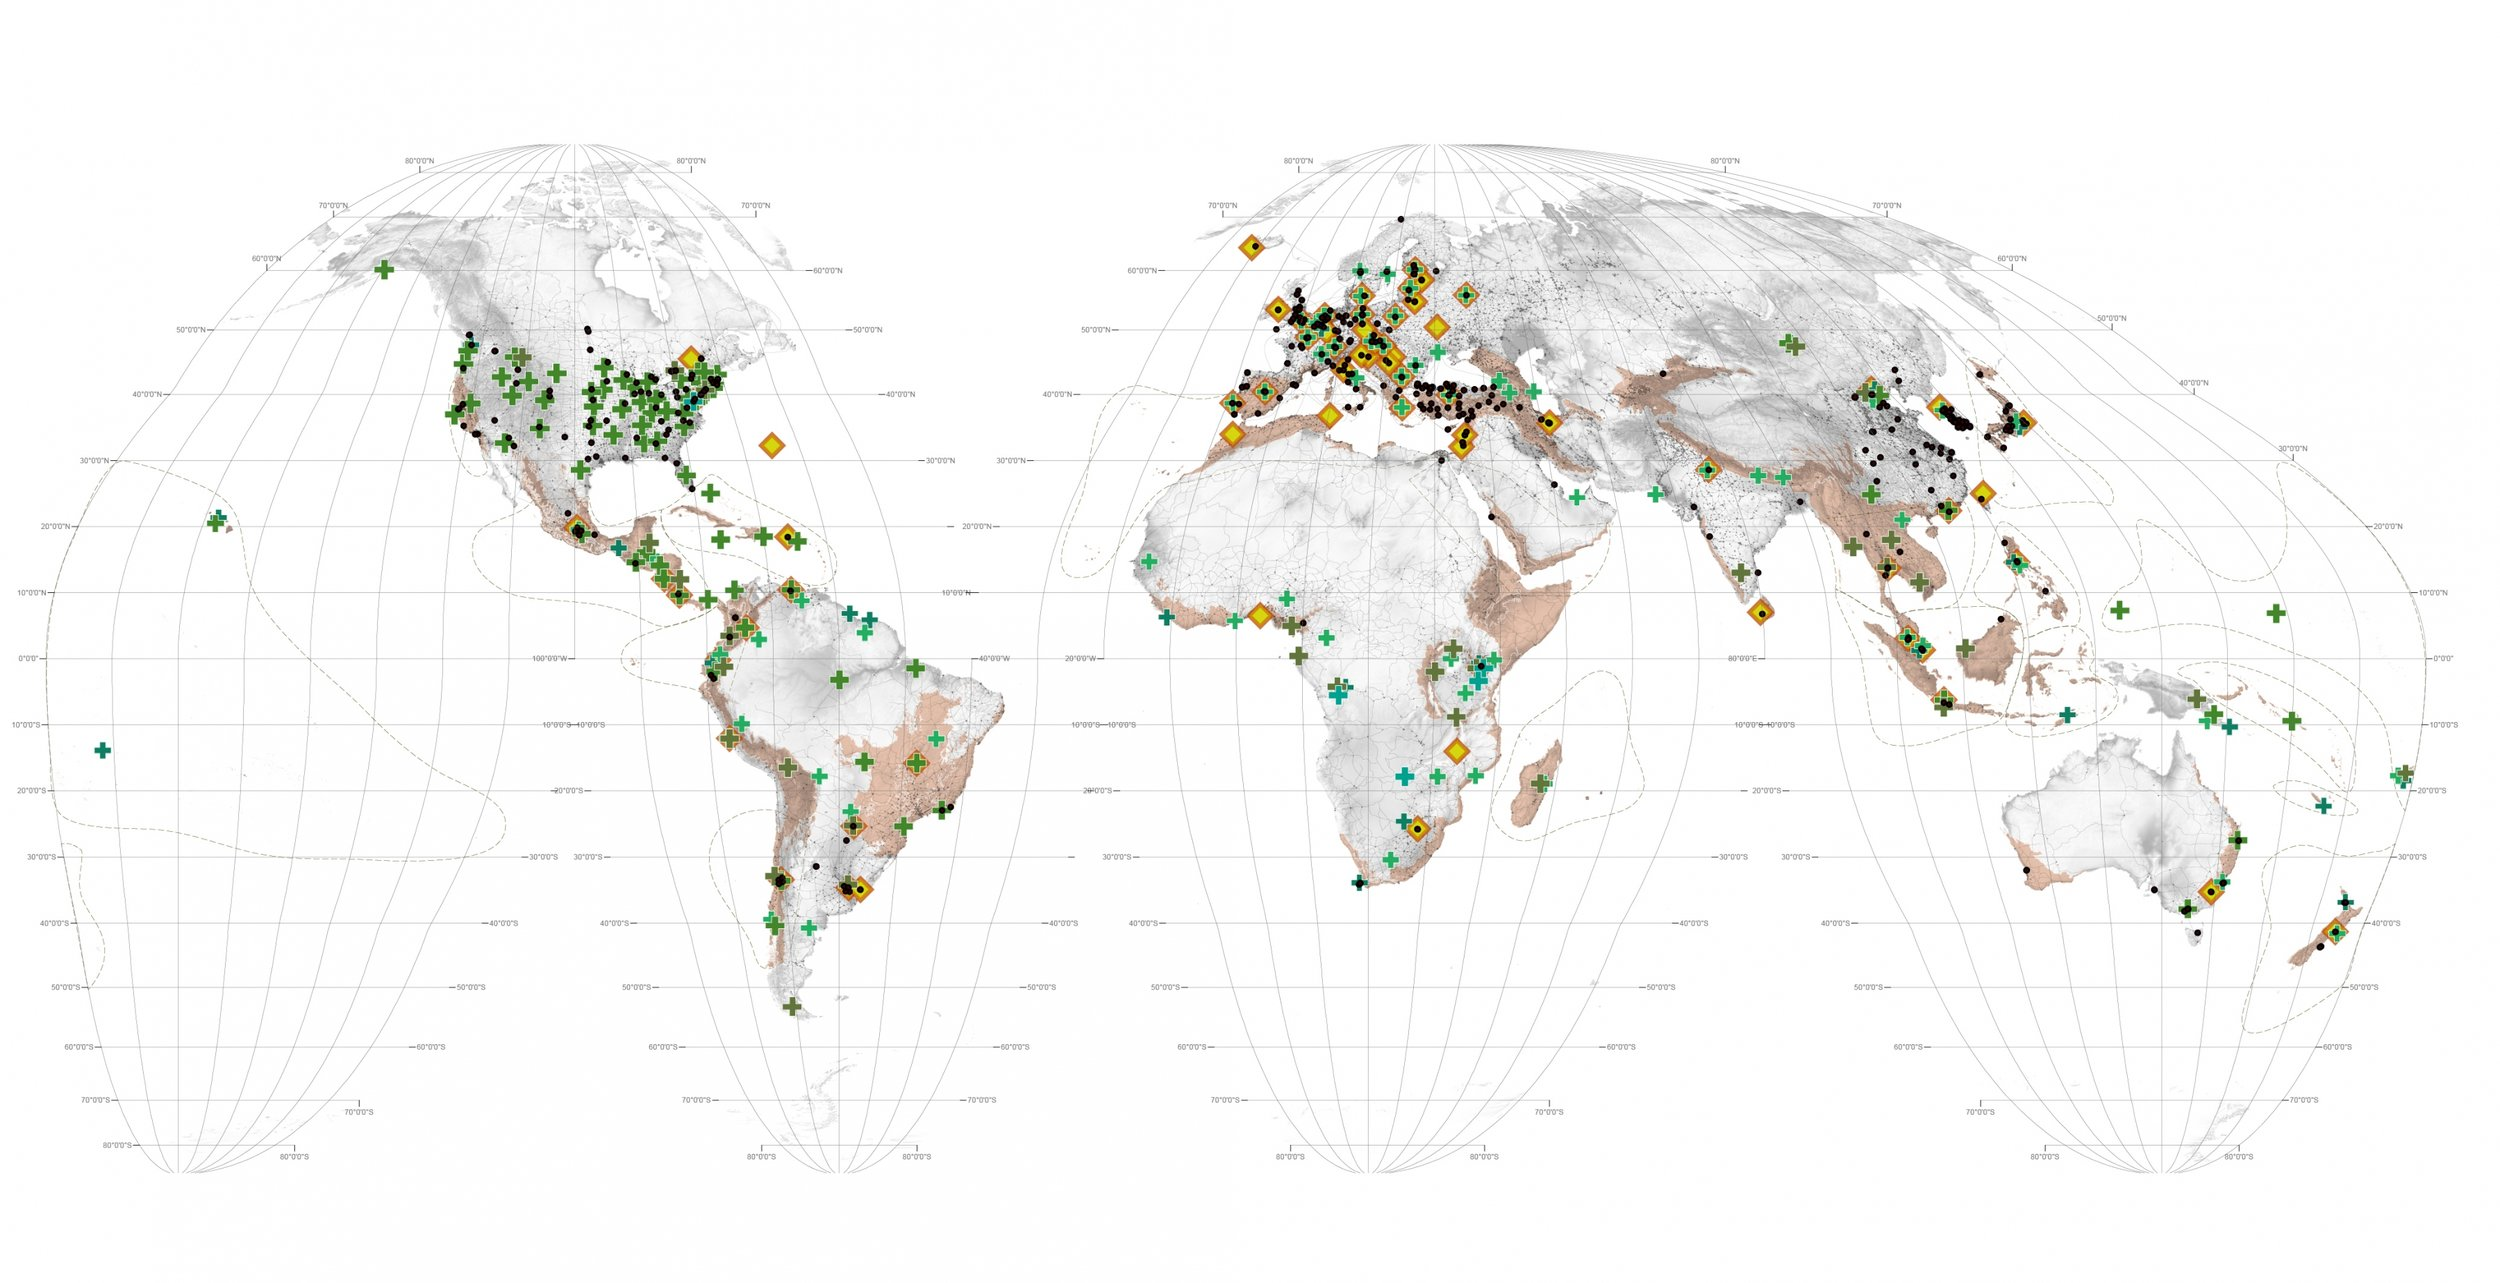 Map 2 - 'Knowledge' shows the global location of schools of landscape architecture.